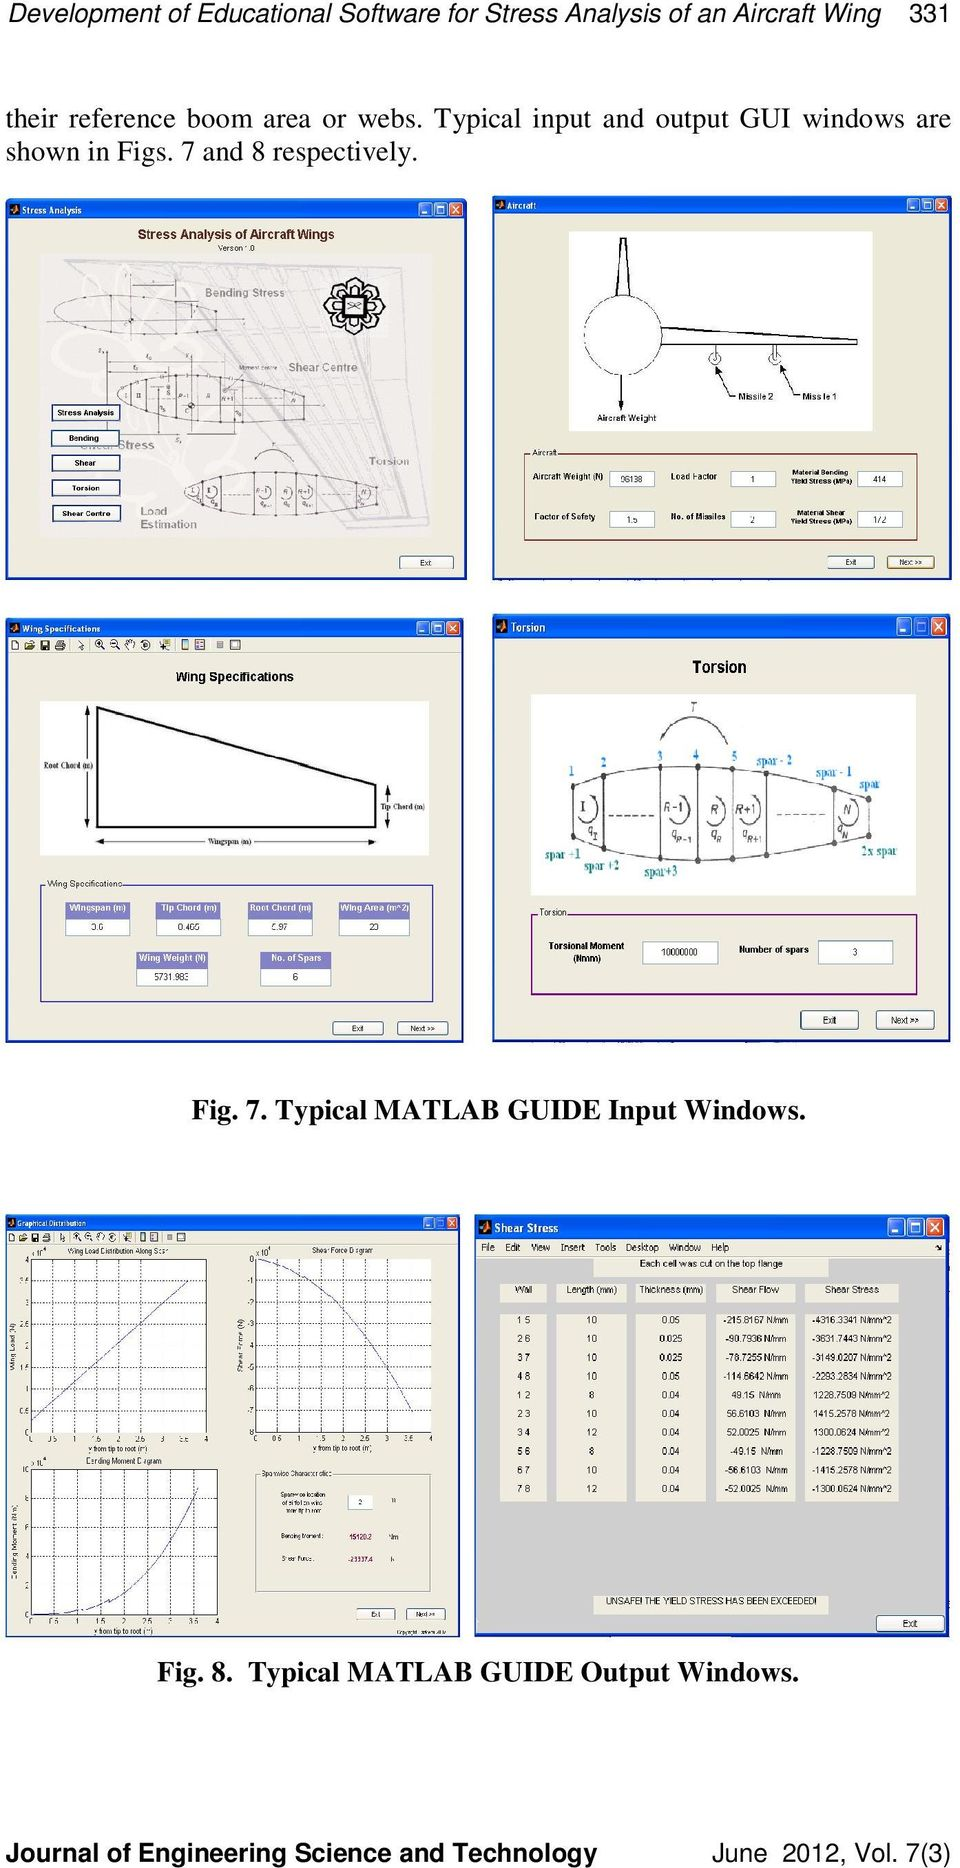 DEVELOPMENT OF EDUCATIONAL SOFTWARE FOR STRESS ANALYSIS OF AN